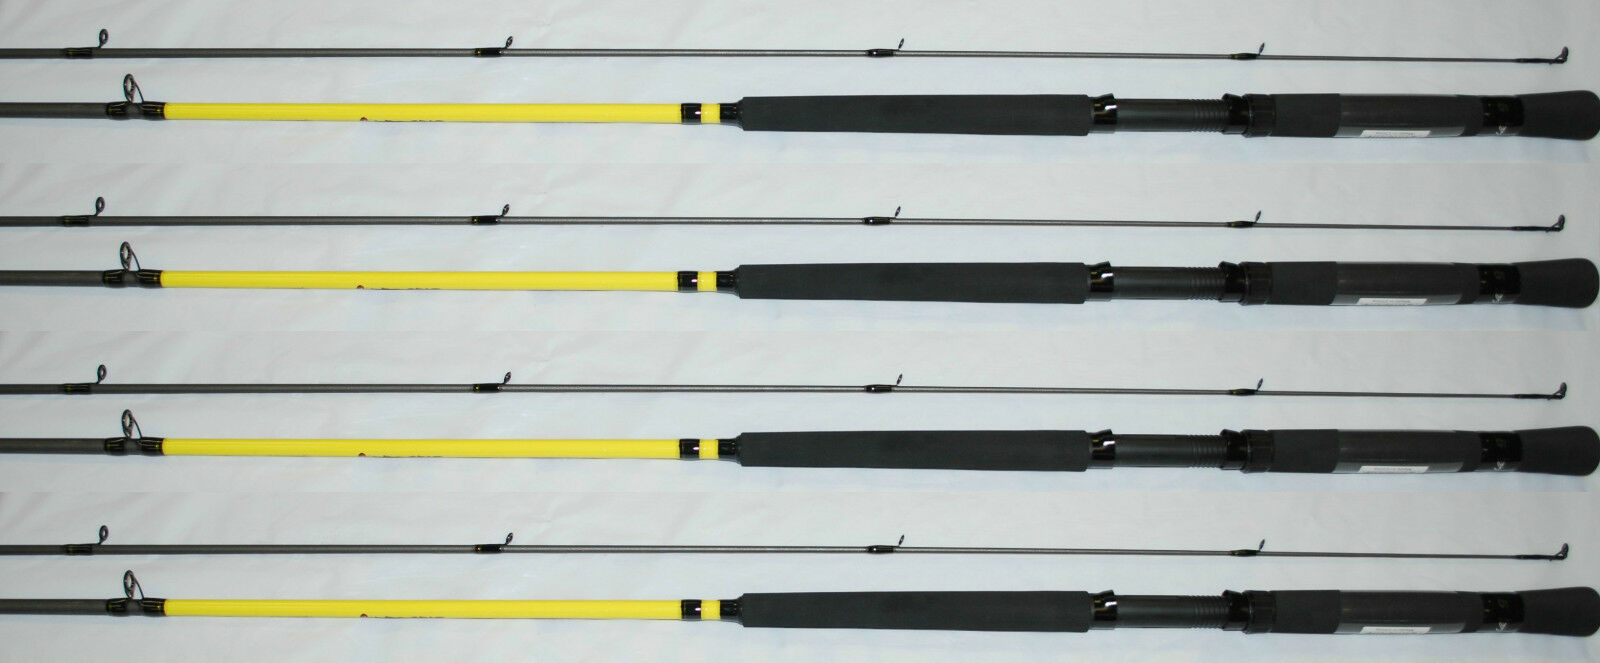 LEWS MR. CRAPPIE SLAB DADDY 14'  CRAPPIE FISHING POLES SDL14-2 (1 SET OF 4)  brand on sale clearance